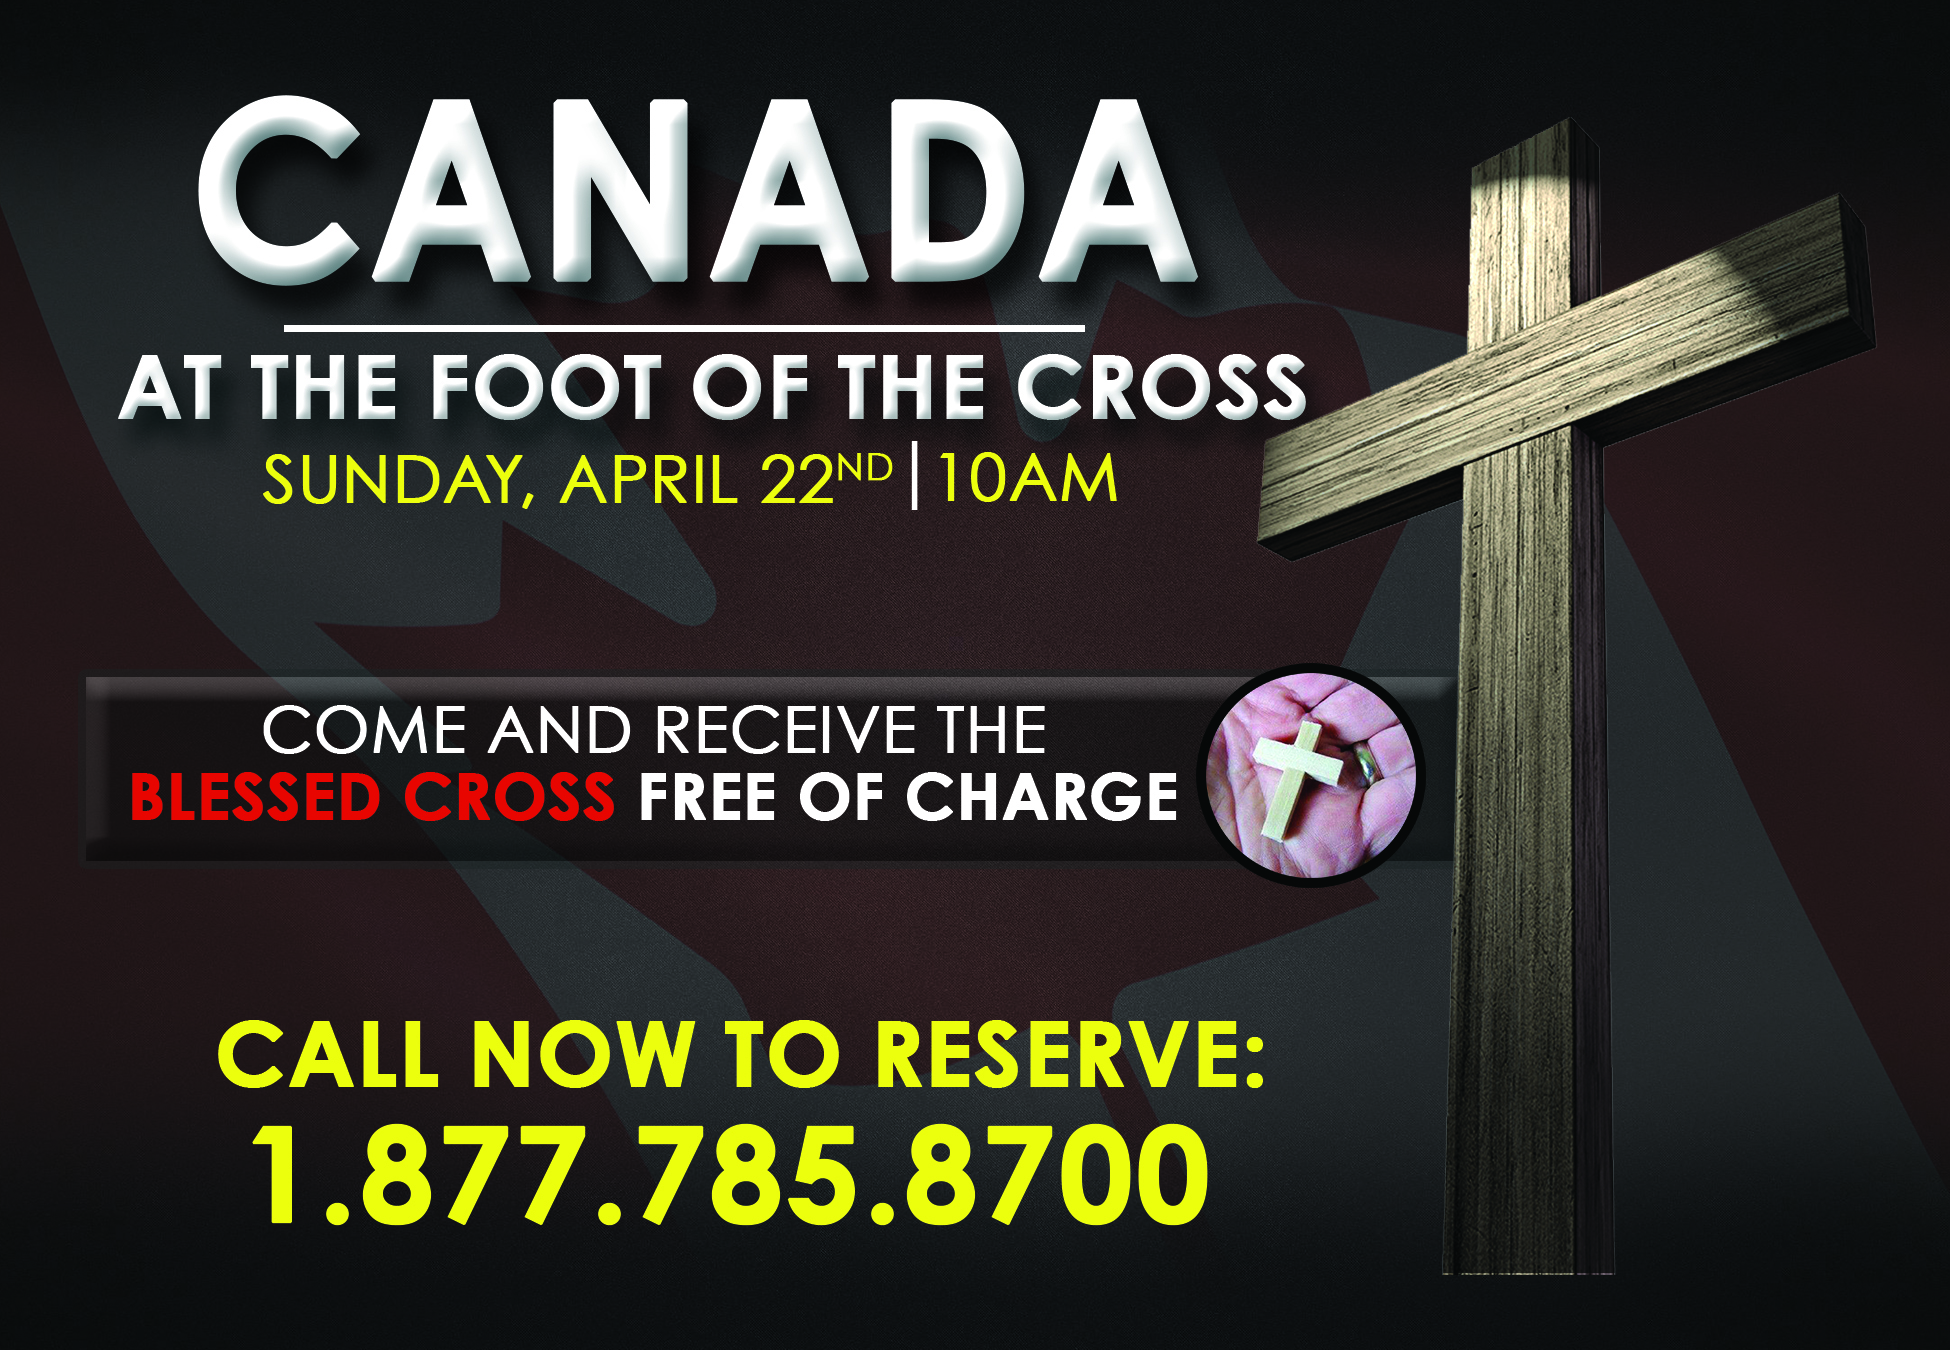 Canada at the Foot of the Cross